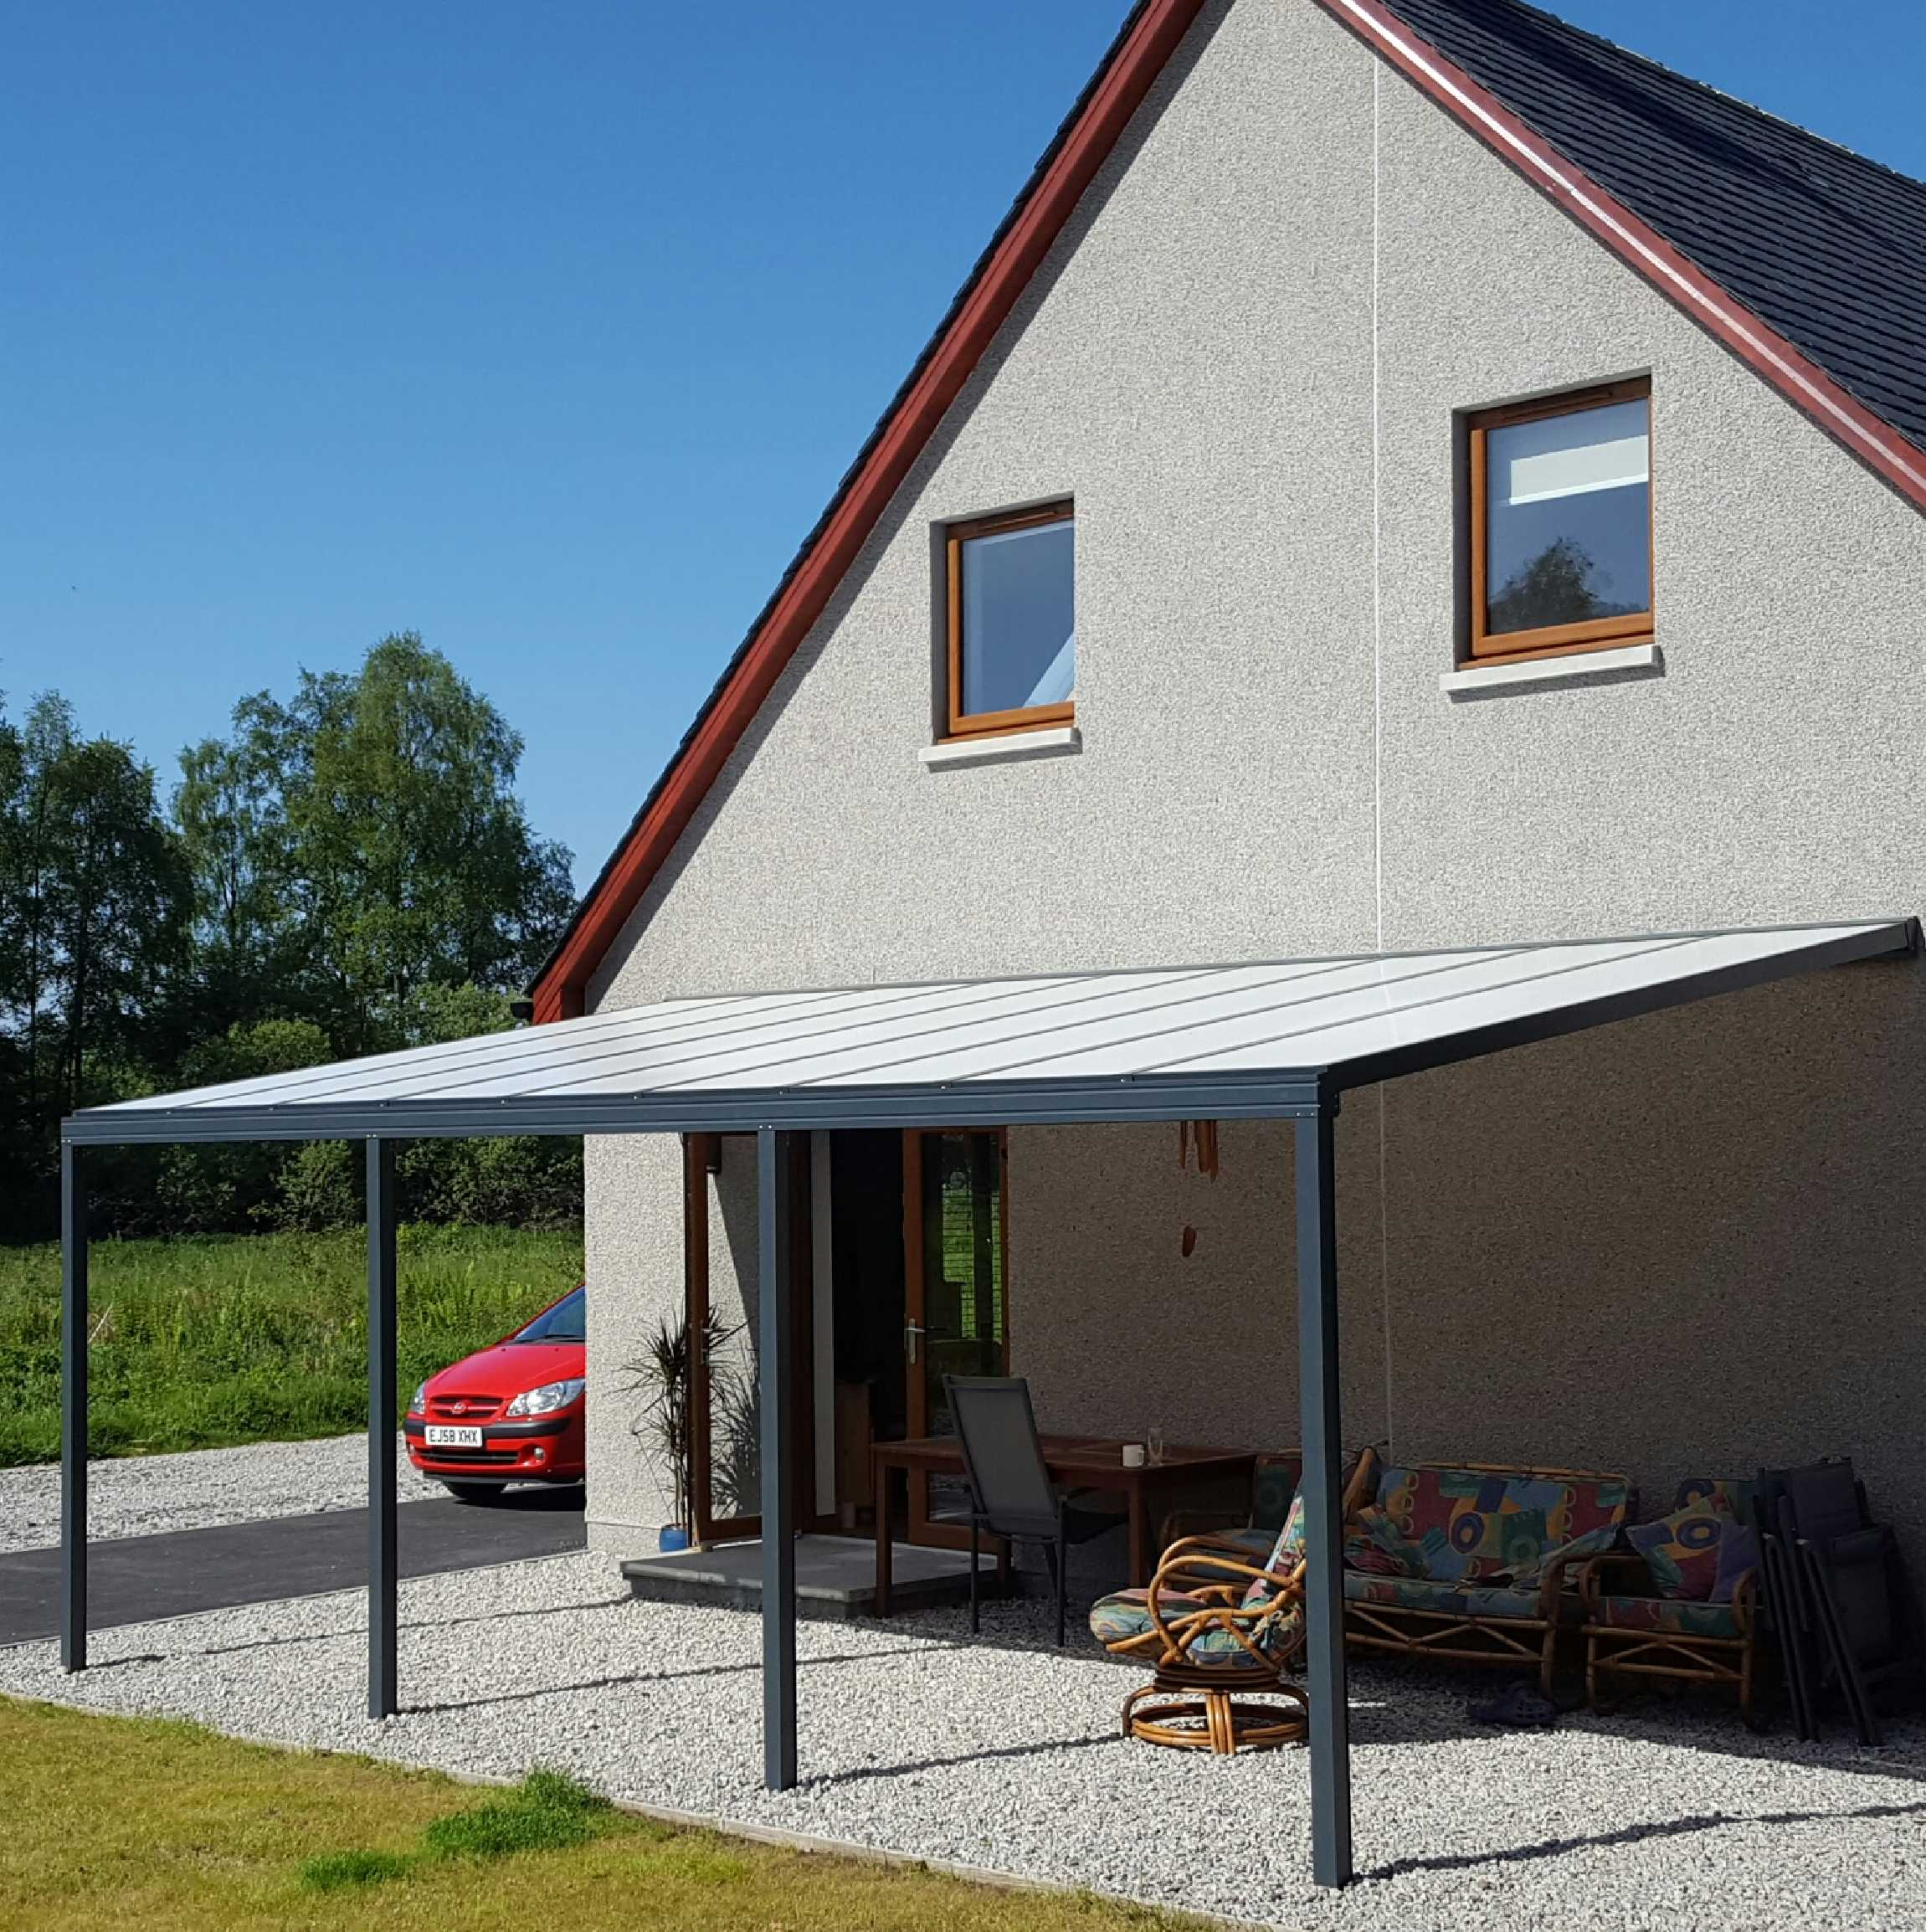 Great selection of Omega Smart Lean-To Canopy, Anthracite Grey, 16mm Polycarbonate Glazing - 8.4m (W) x 2.0m (P), (4) Supporting Posts